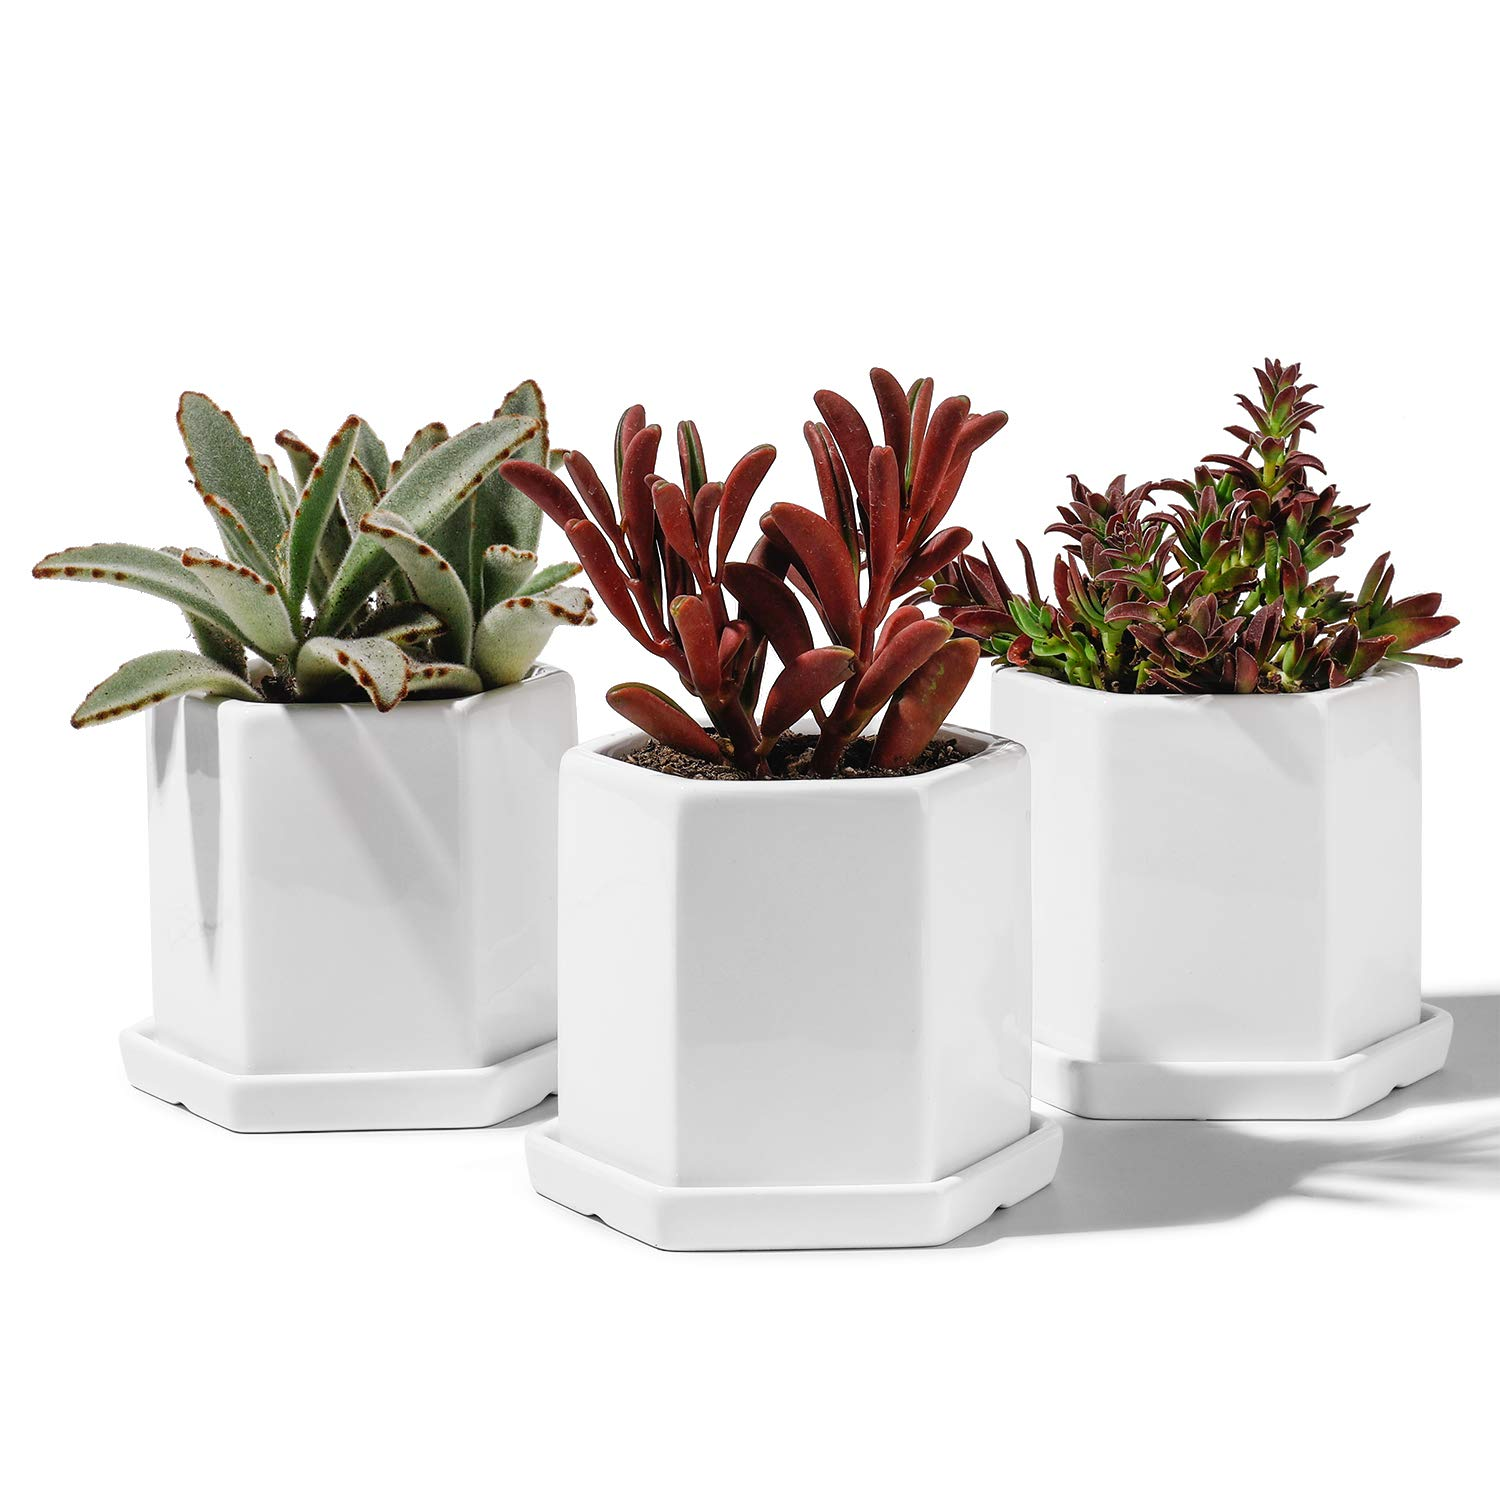 Potey Ceramic Planters Indoor with Saucers – 4.1 Succulent Plant Flower Pots Glazed Container with Drain Hole – Set of 3, Pure White, Hexagon